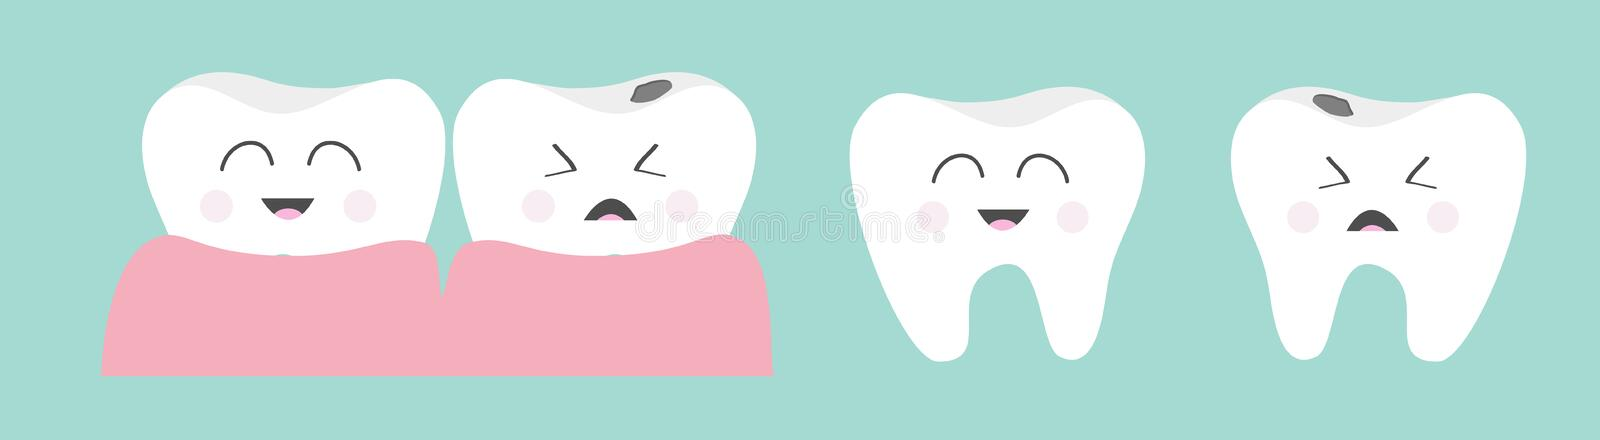 Healthy smiling tooth gum icon set line. Crying bad ill teeth caries care, gum. Cute cartoon kawaii funny baby haracter. Oral. Dental hygiene. Blue background vector illustration